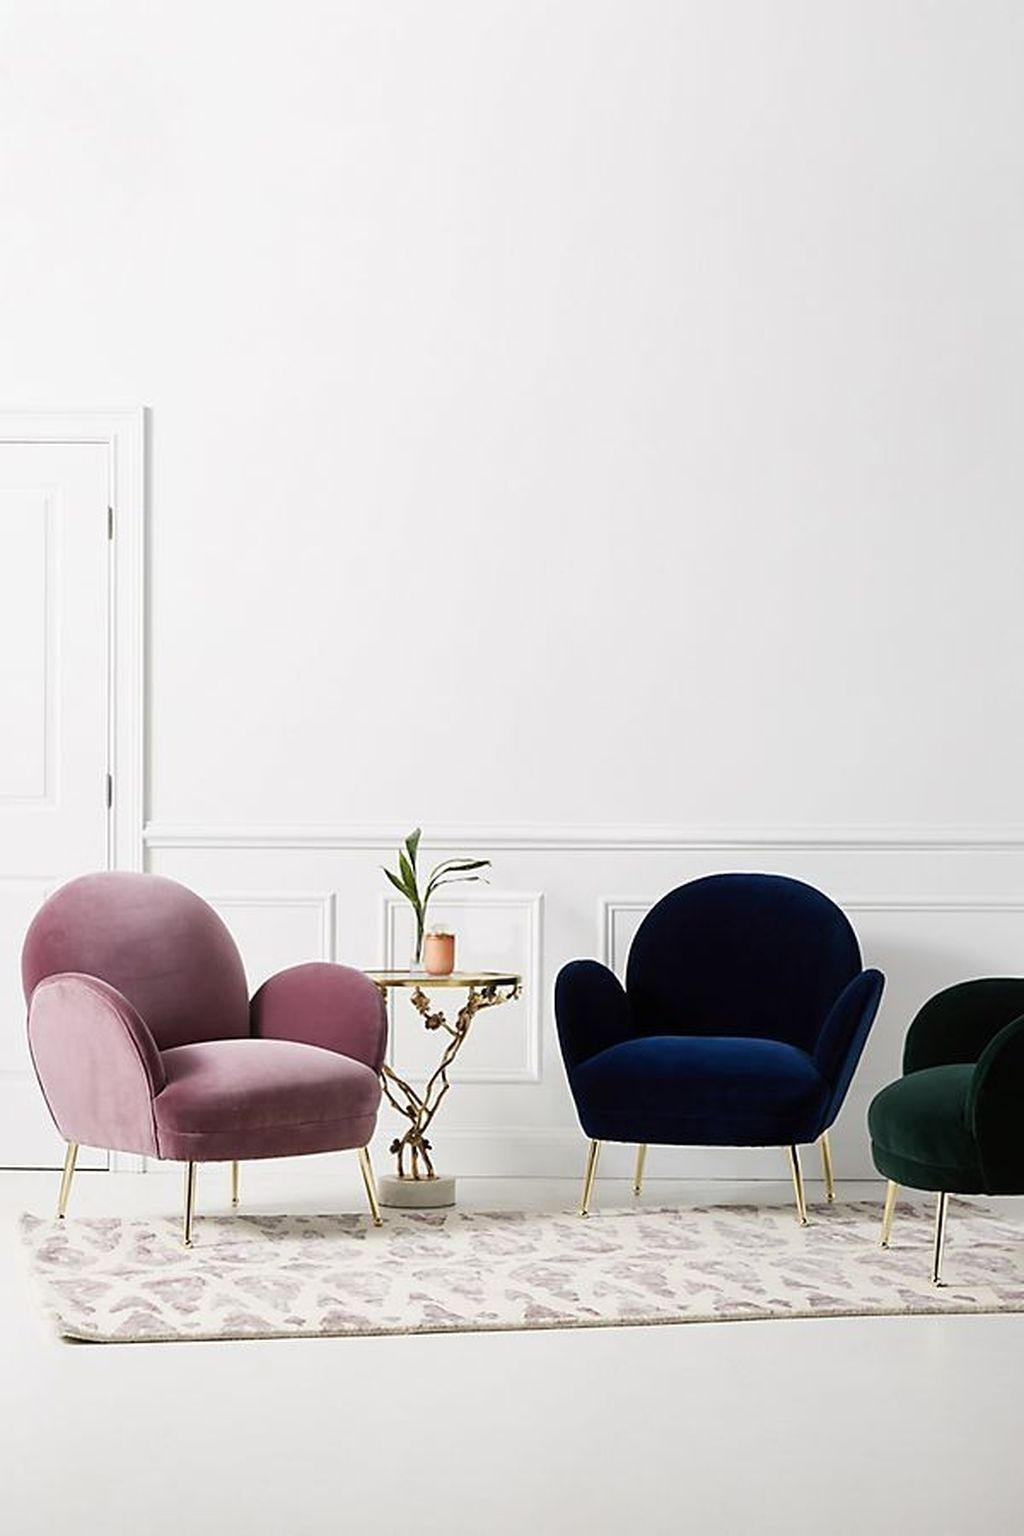 Relaxing Chairs Decor Ideas That Will Make Your Home Look Great 14 In 2020 Relaxing Chair Furniture Inexpensive Living Room #relaxing #chairs #for #living #room